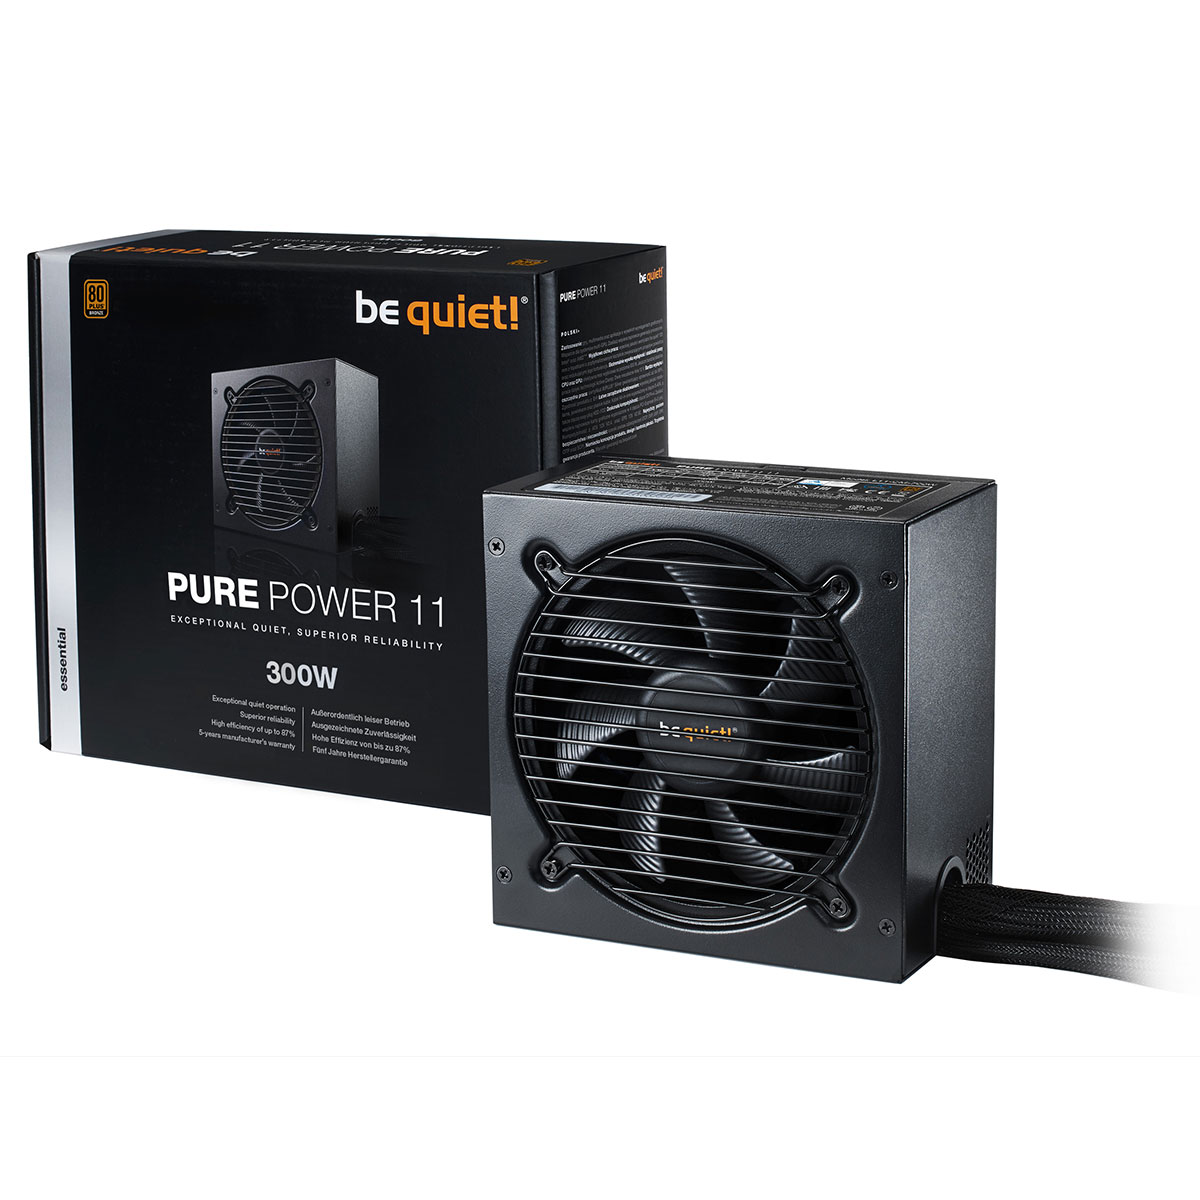 Alimentation PC be quiet! Pure Power 11 300W 80PLUS Bronze Alimentation 300W ATX 12V 2.4 (Garantie 5 ans constructeur) - 80PLUS Bronze